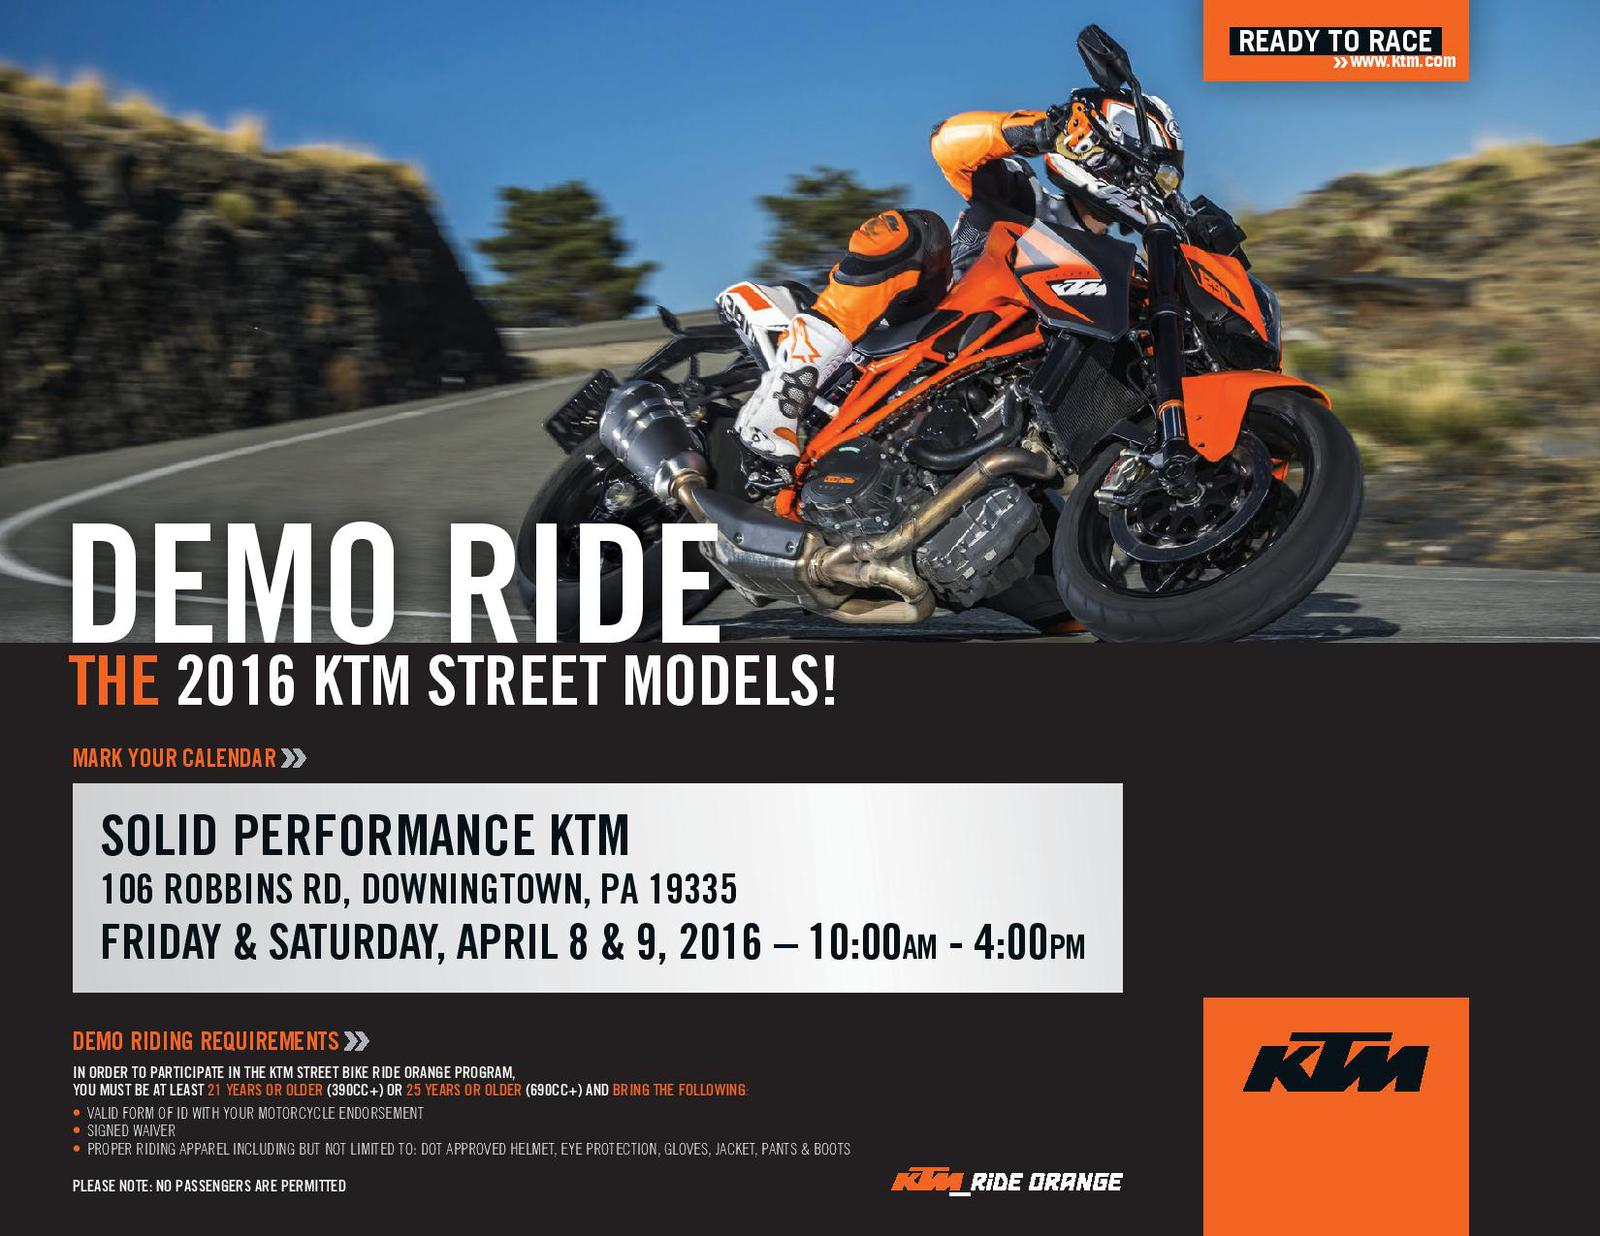 events solid performance ktm downingtown, pa 484-593-0095